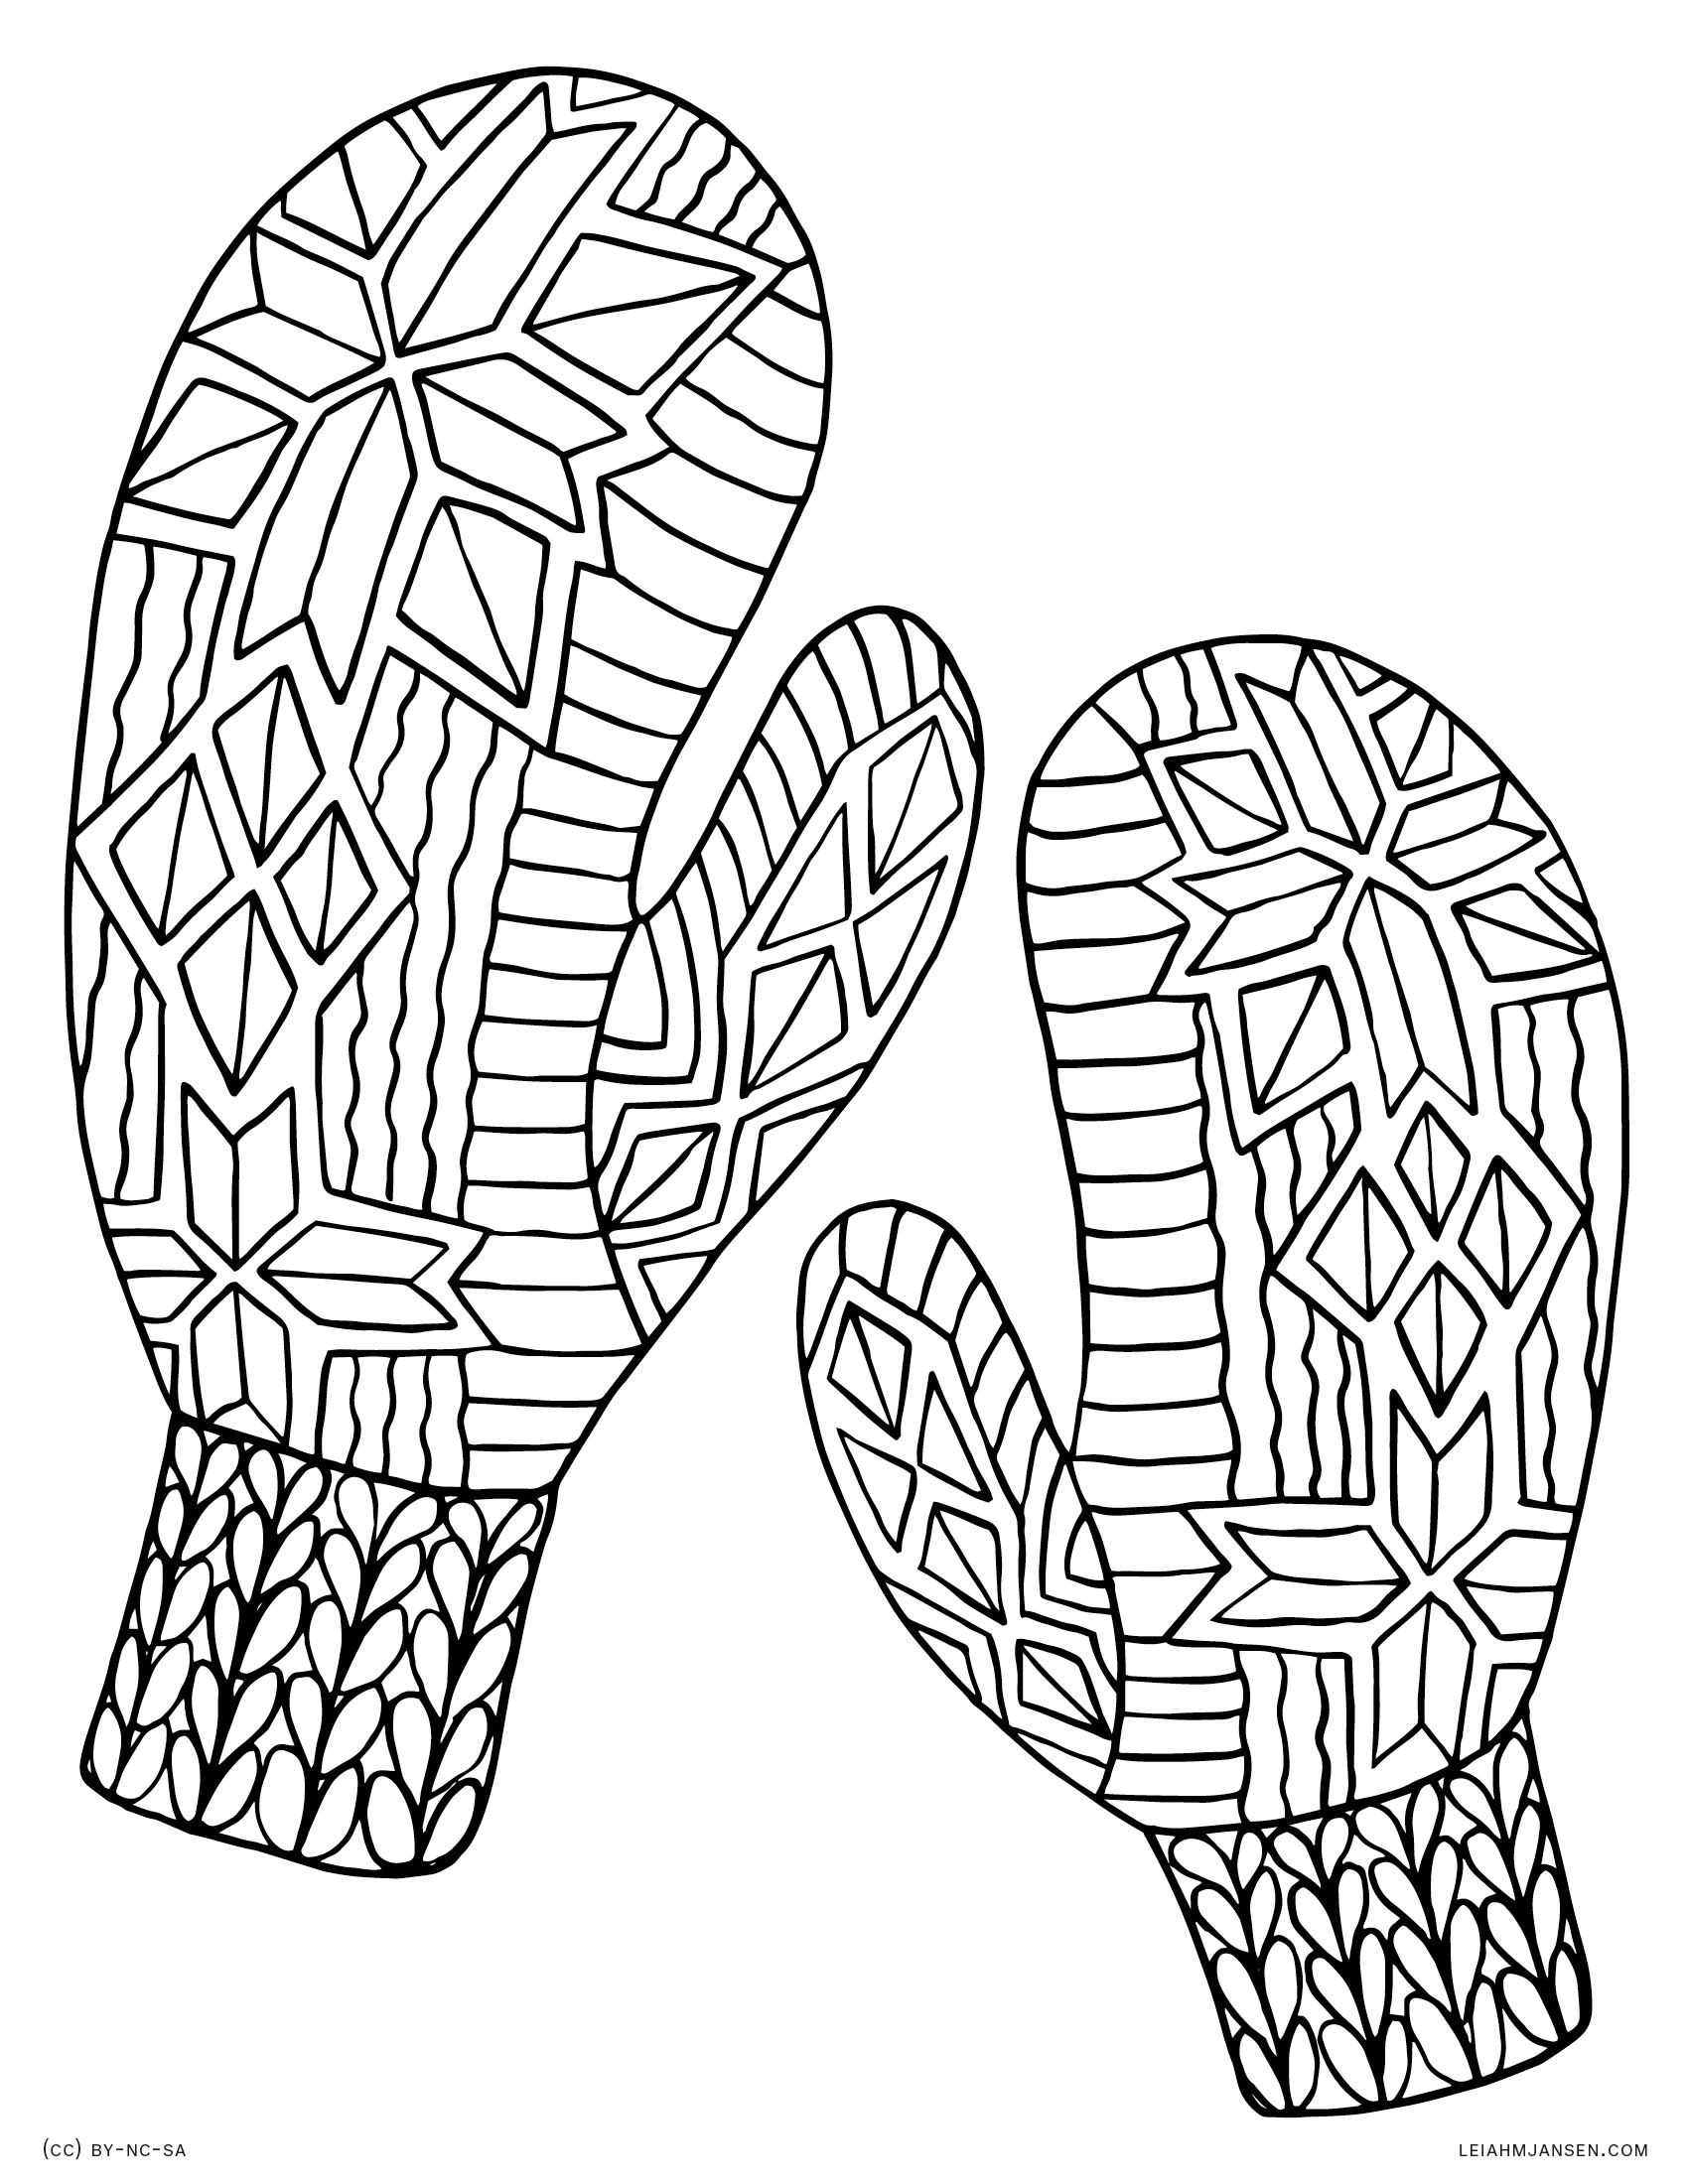 printable mitten coloring page mitten coloring page tracing twisty noodle coloring printable page mitten